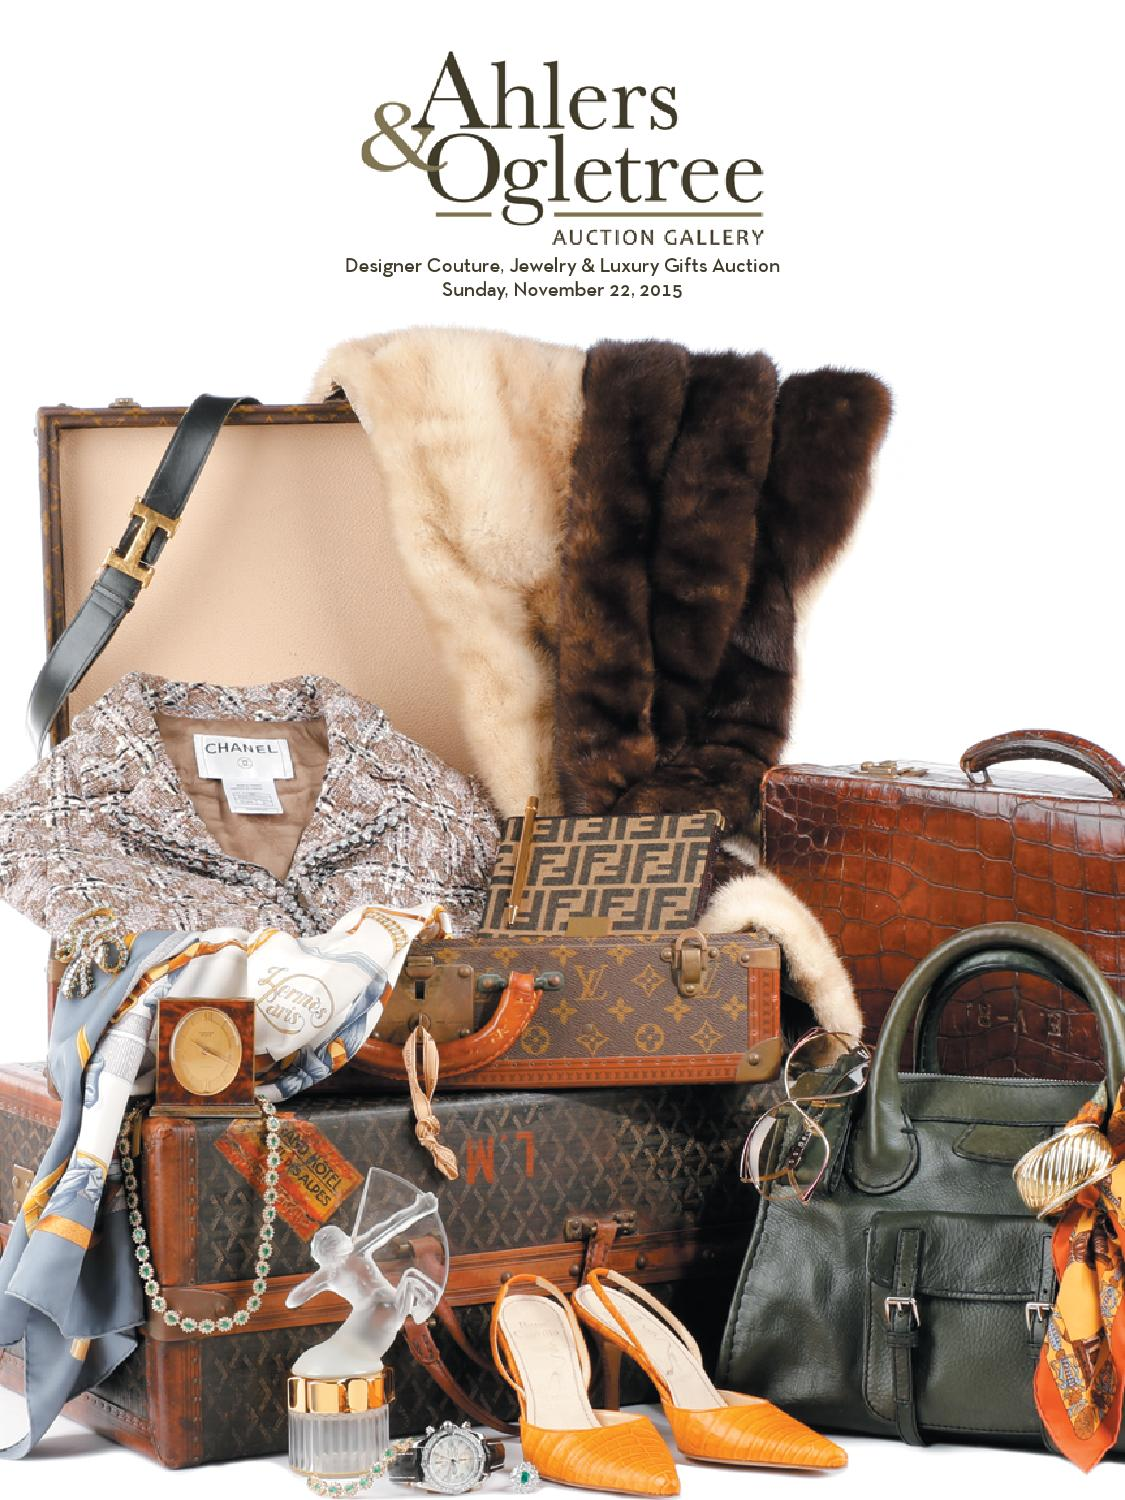 6ae6c8a8a78e Ahlers & Ogletree Auction Gallery November Catalog by Ahlers & Ogletree  Auction Gallery - issuu